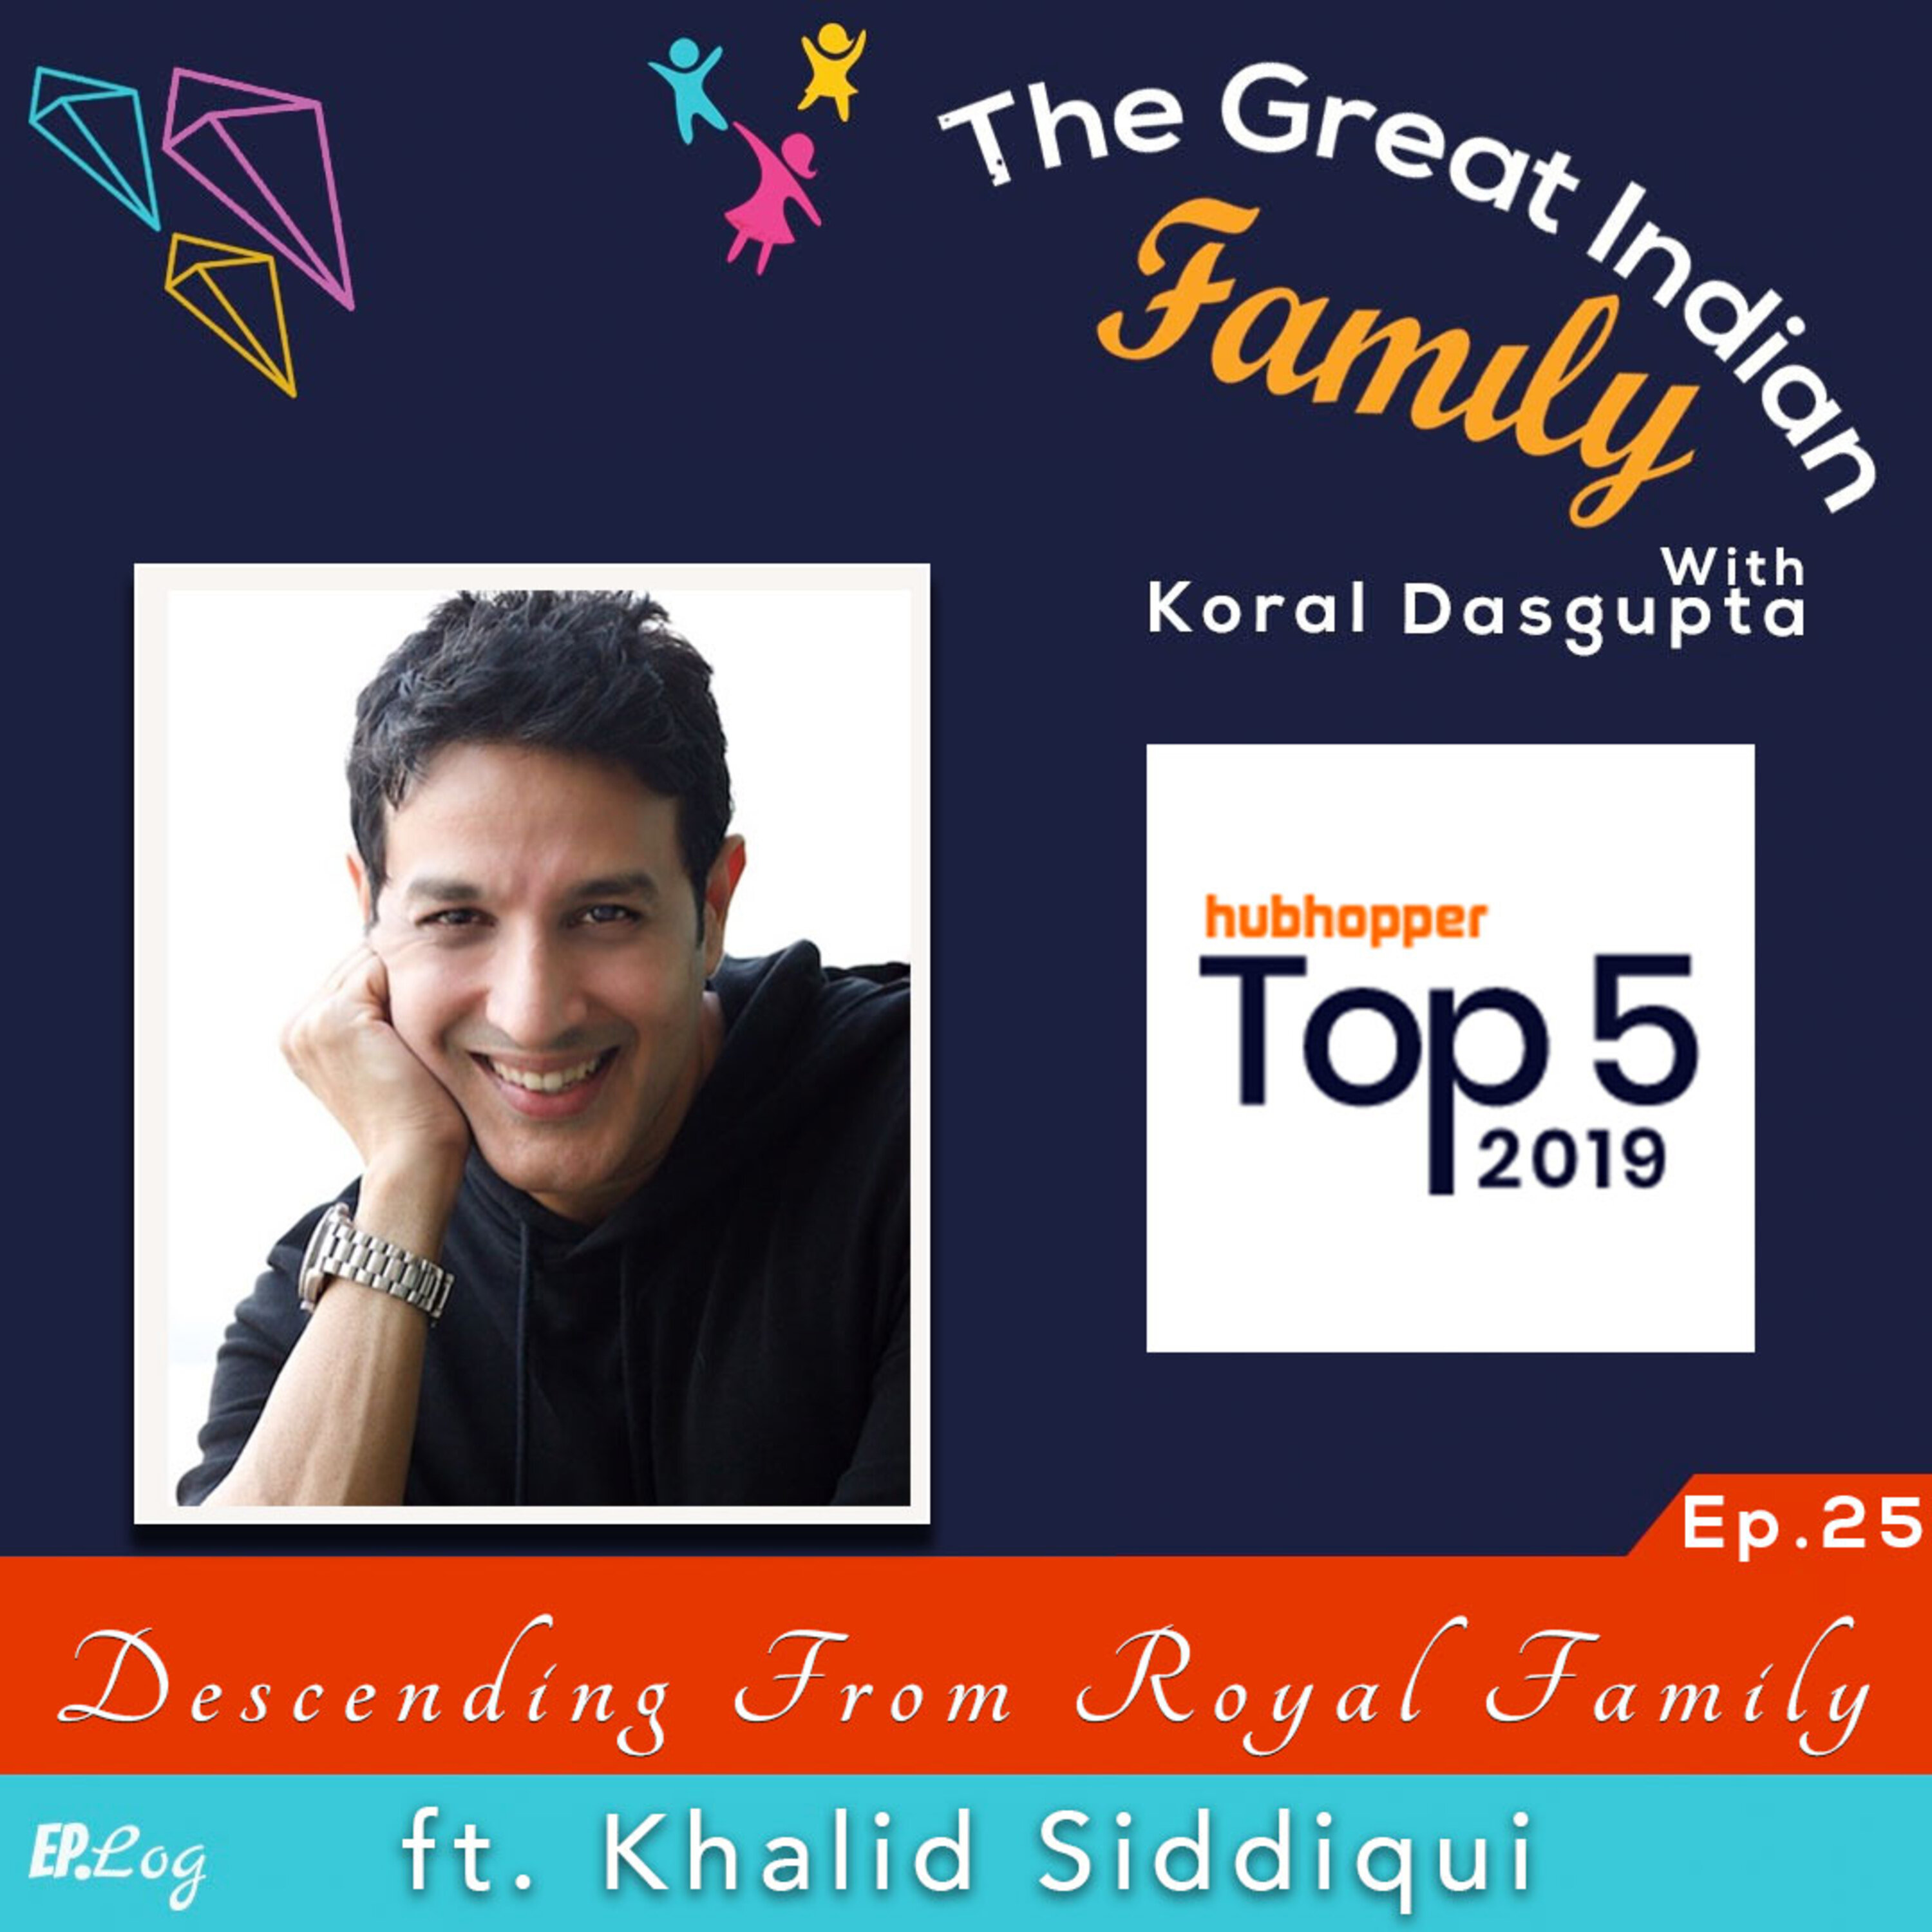 Ep.25 Descending From A Royal Family ft. Khalid Siddiqui, Actor & Model